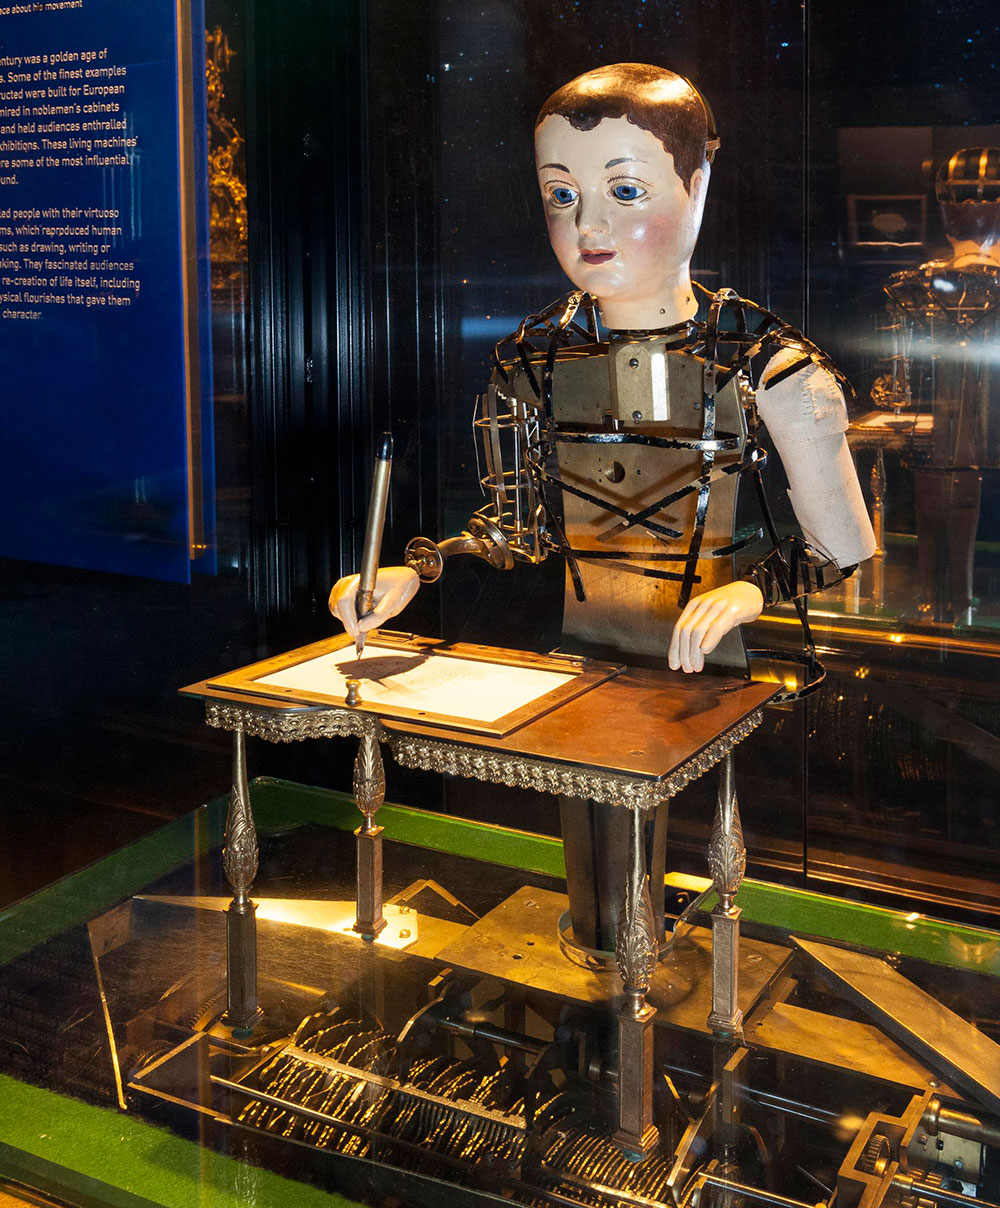 Automaton Draughtsman-Writer, by Henri Maillardet, UK, about 1800